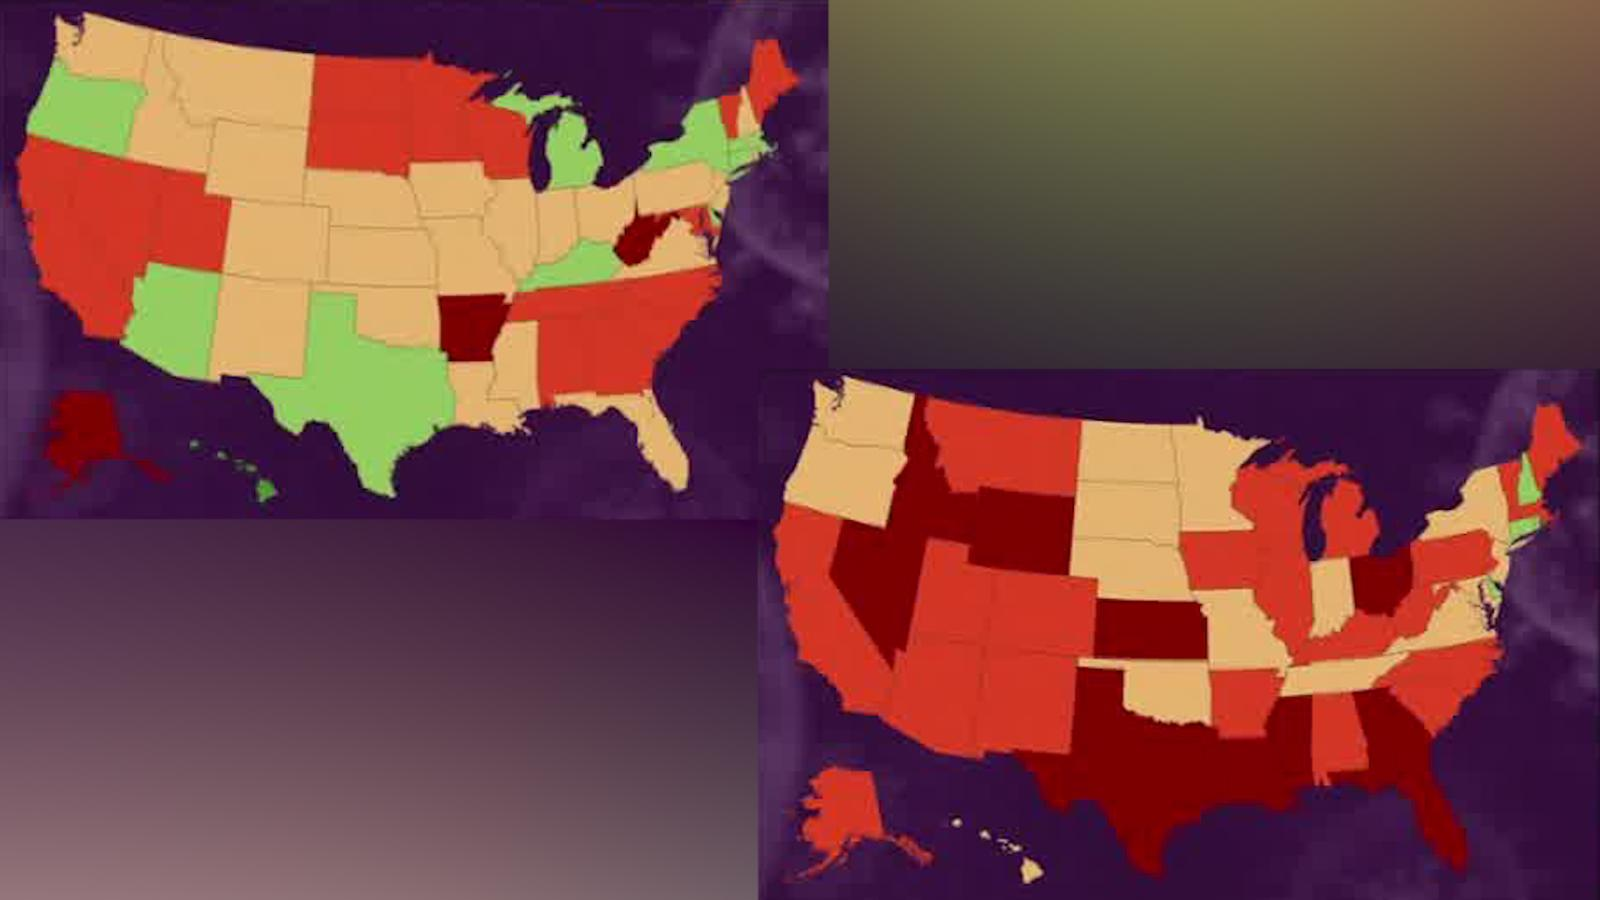 Us Coronavirus California And Florida Are Charting Different Paths As Cases Spike Cnn